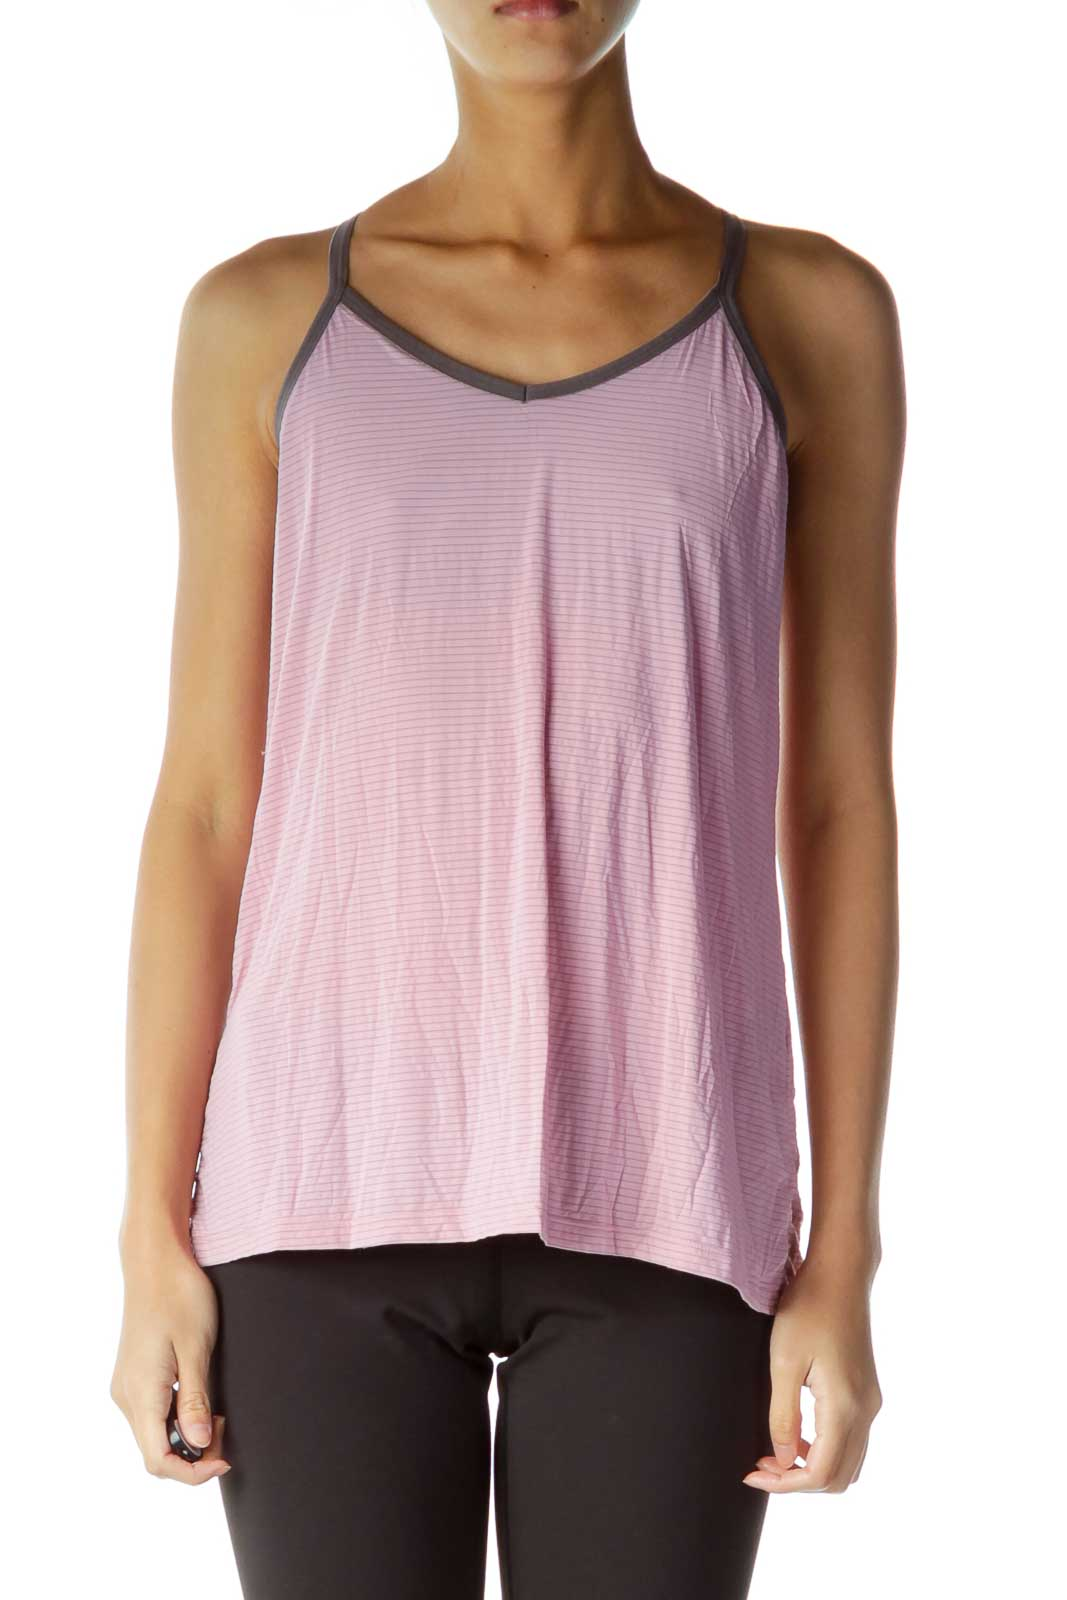 Pink Gray Loose Striped Yoga Top Front